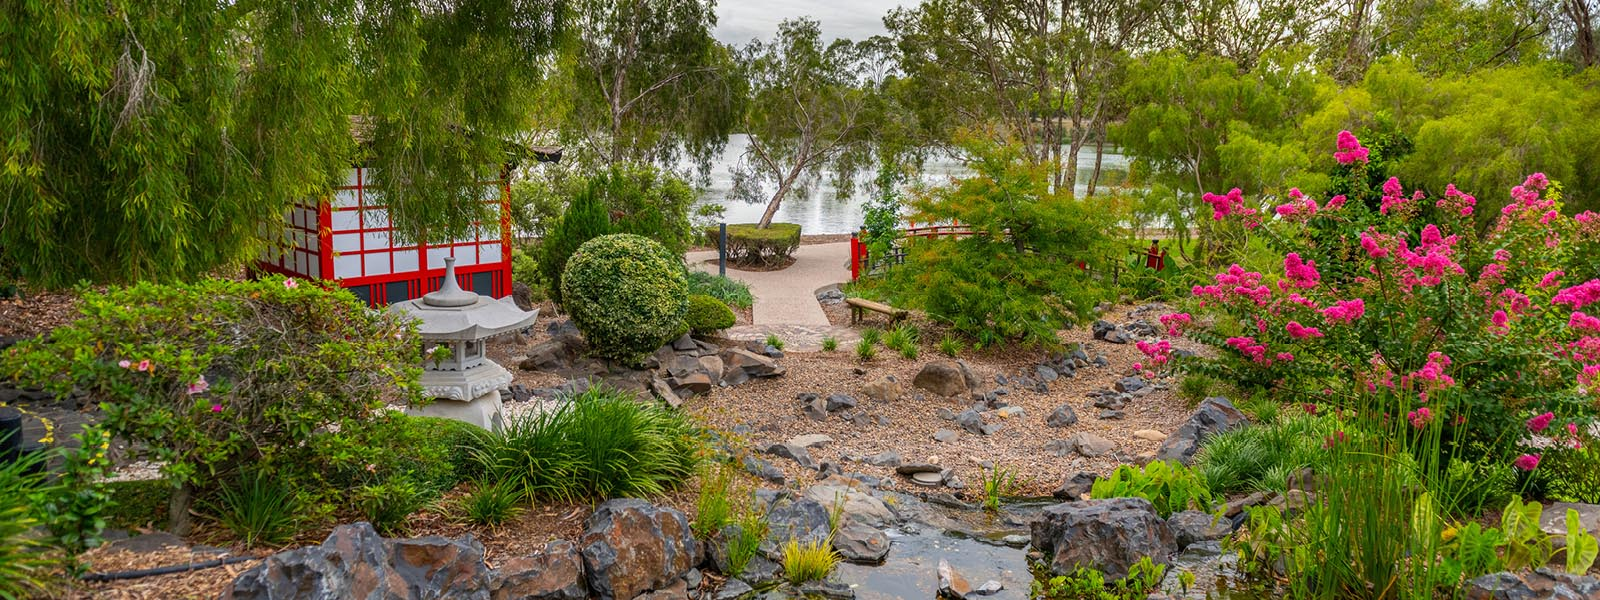 Japanese garden at the bundaberg botanic gardens web